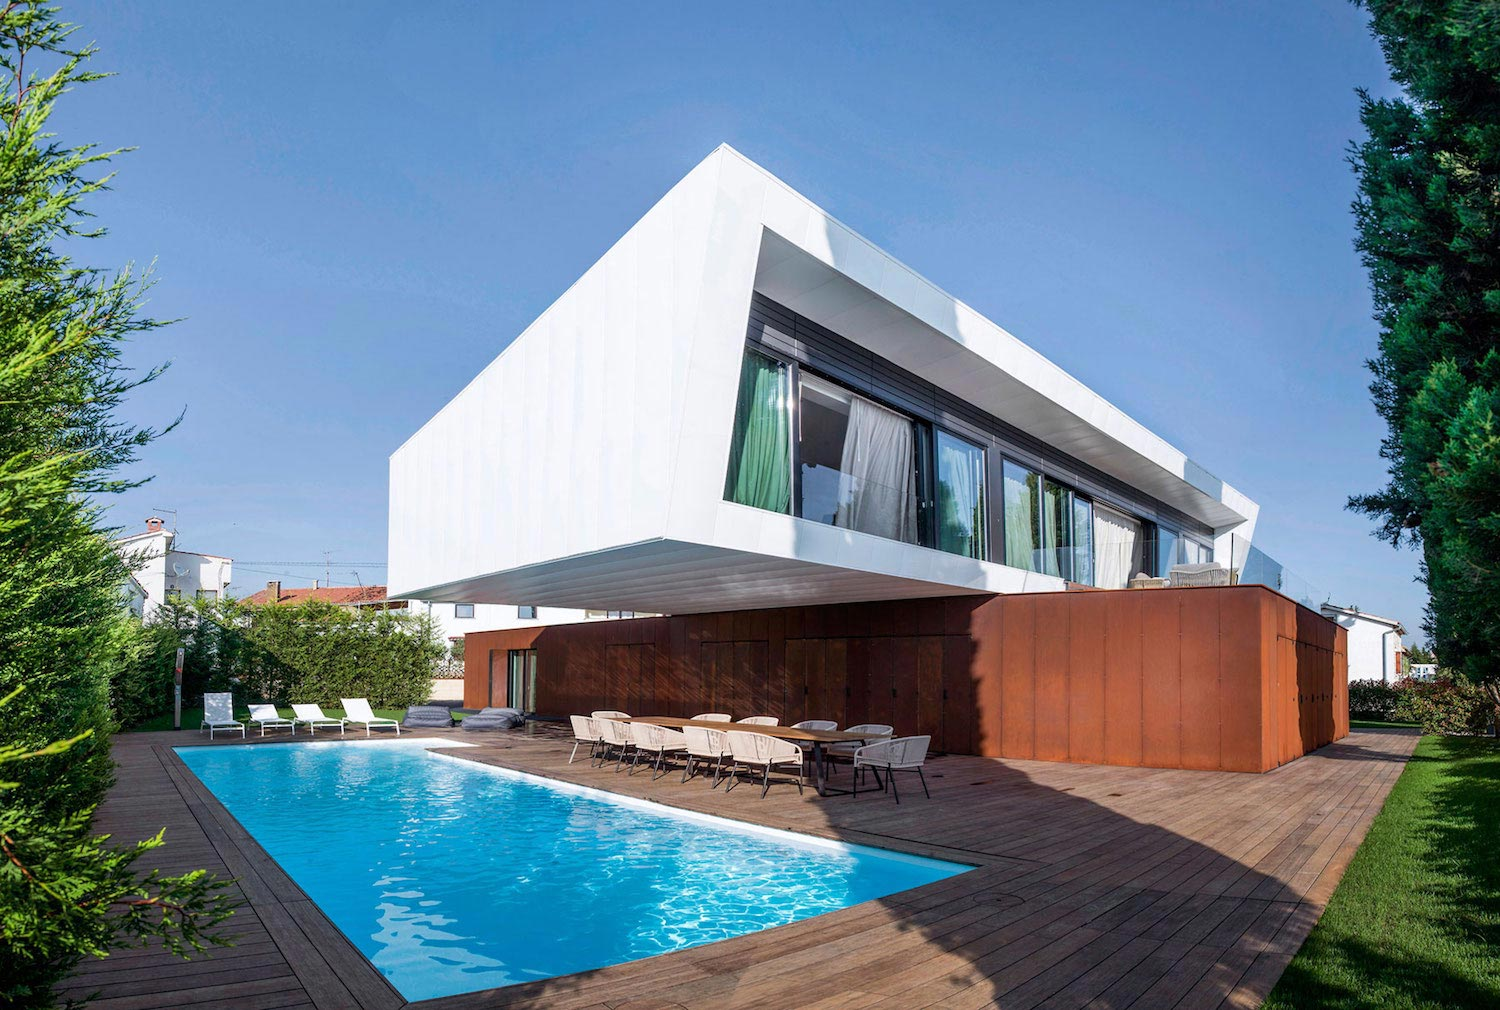 Holiday retreat home, the idea of a simple stroke, a swing of form that can enrich a functional and aesthetic vision - CAANdesign   Architecture and home design blog